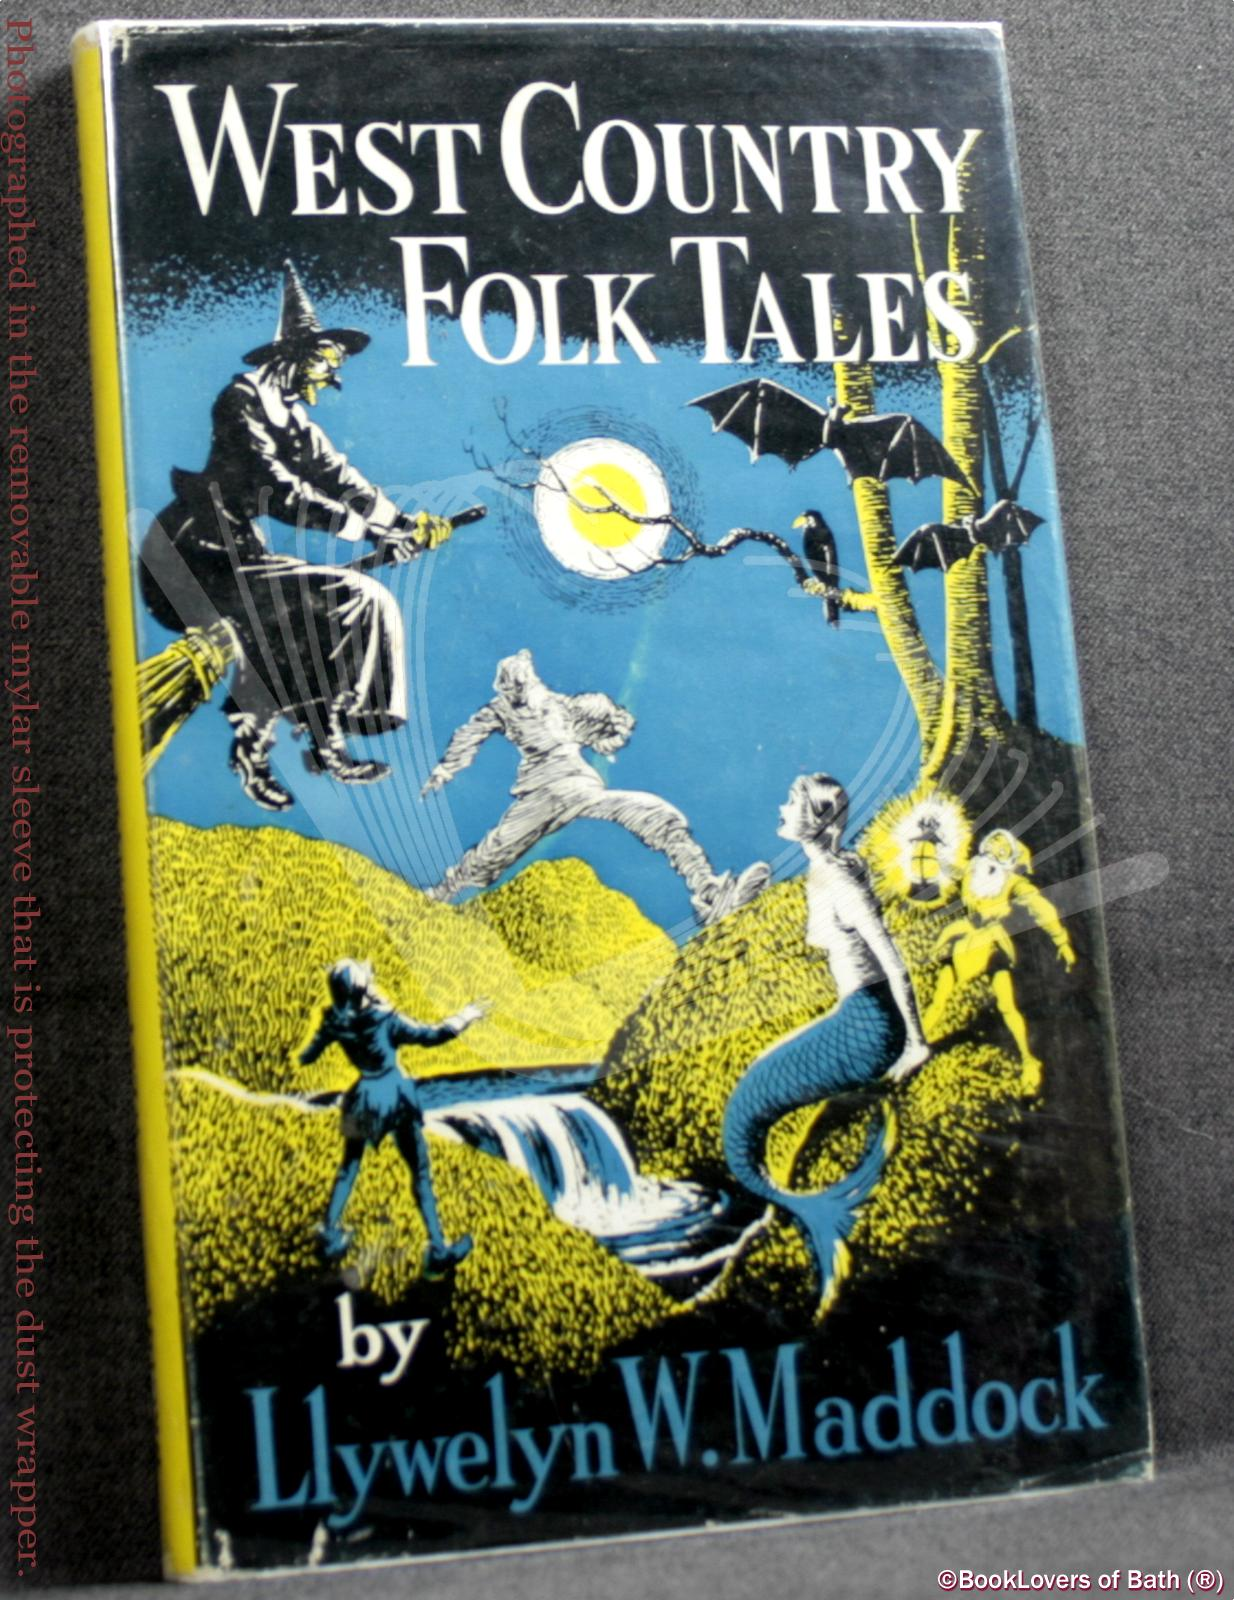 West Country Folk Tales - Llywelyn W. Maddock